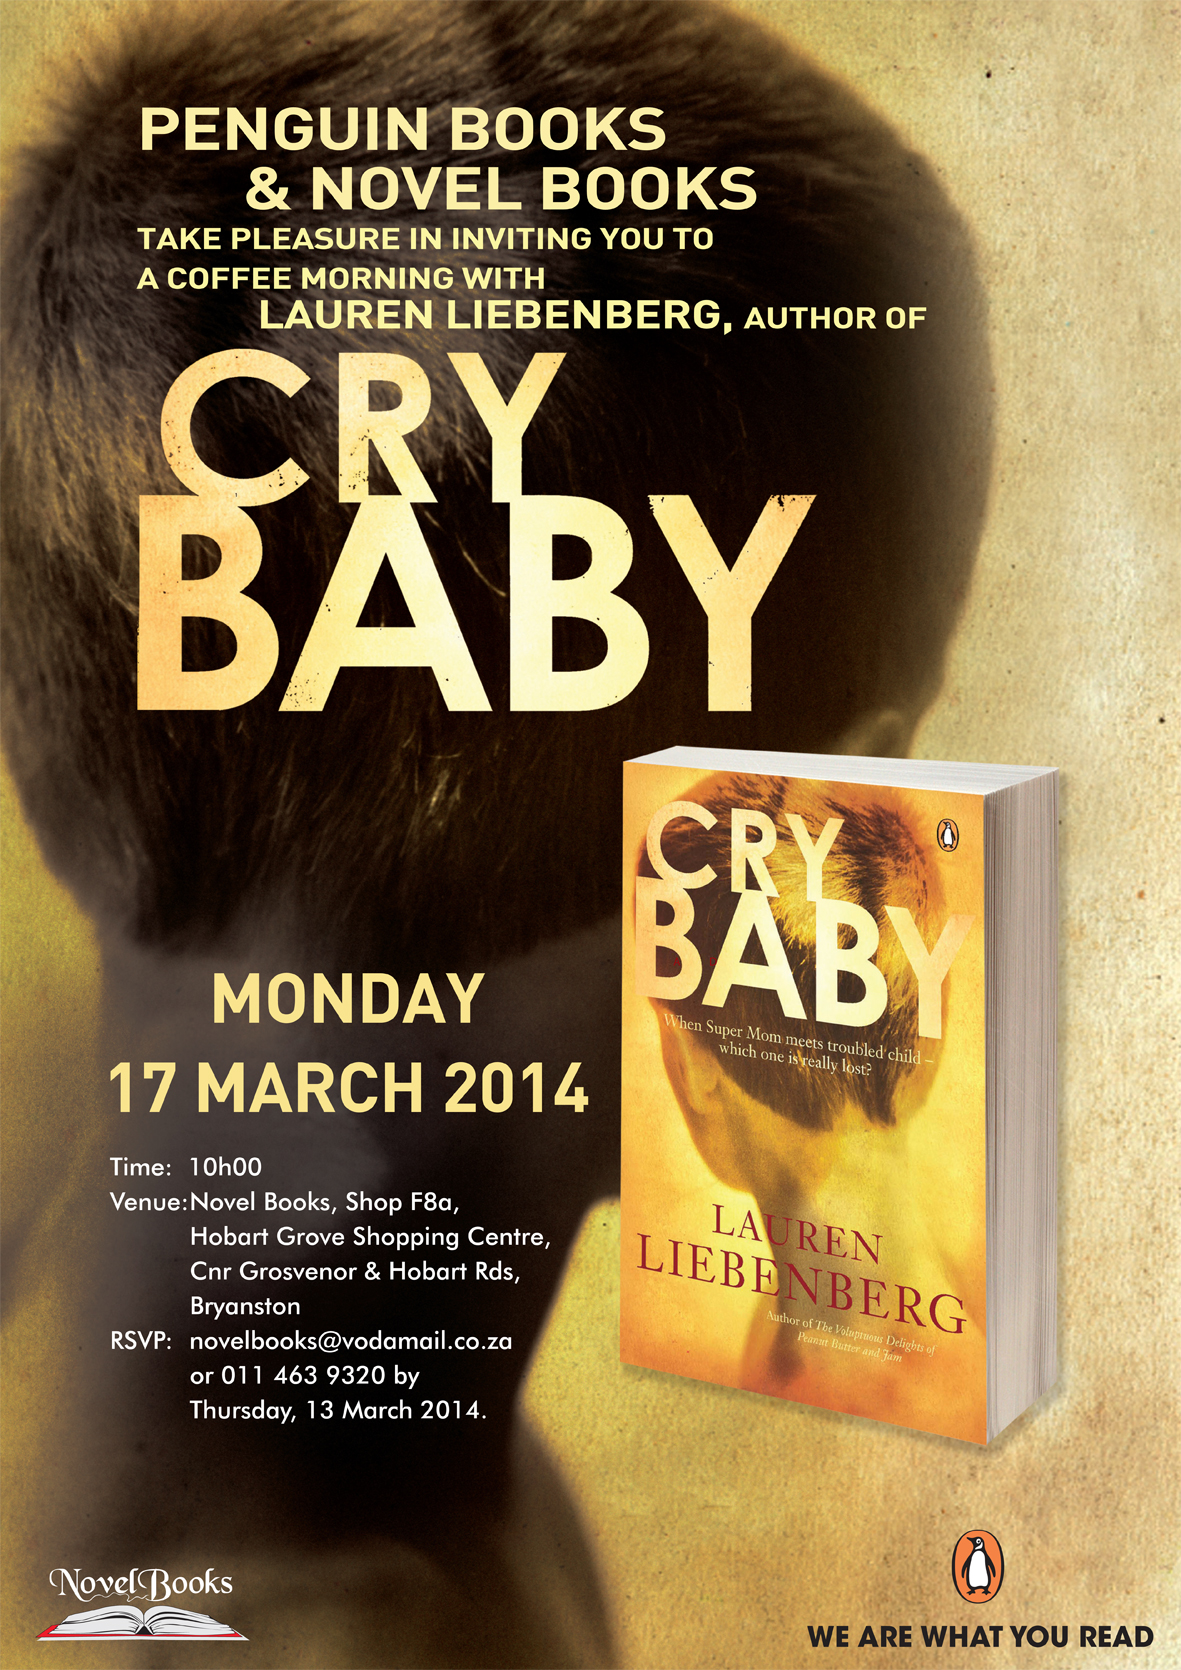 Lauren Liebenberg's book launch for Cry Baby